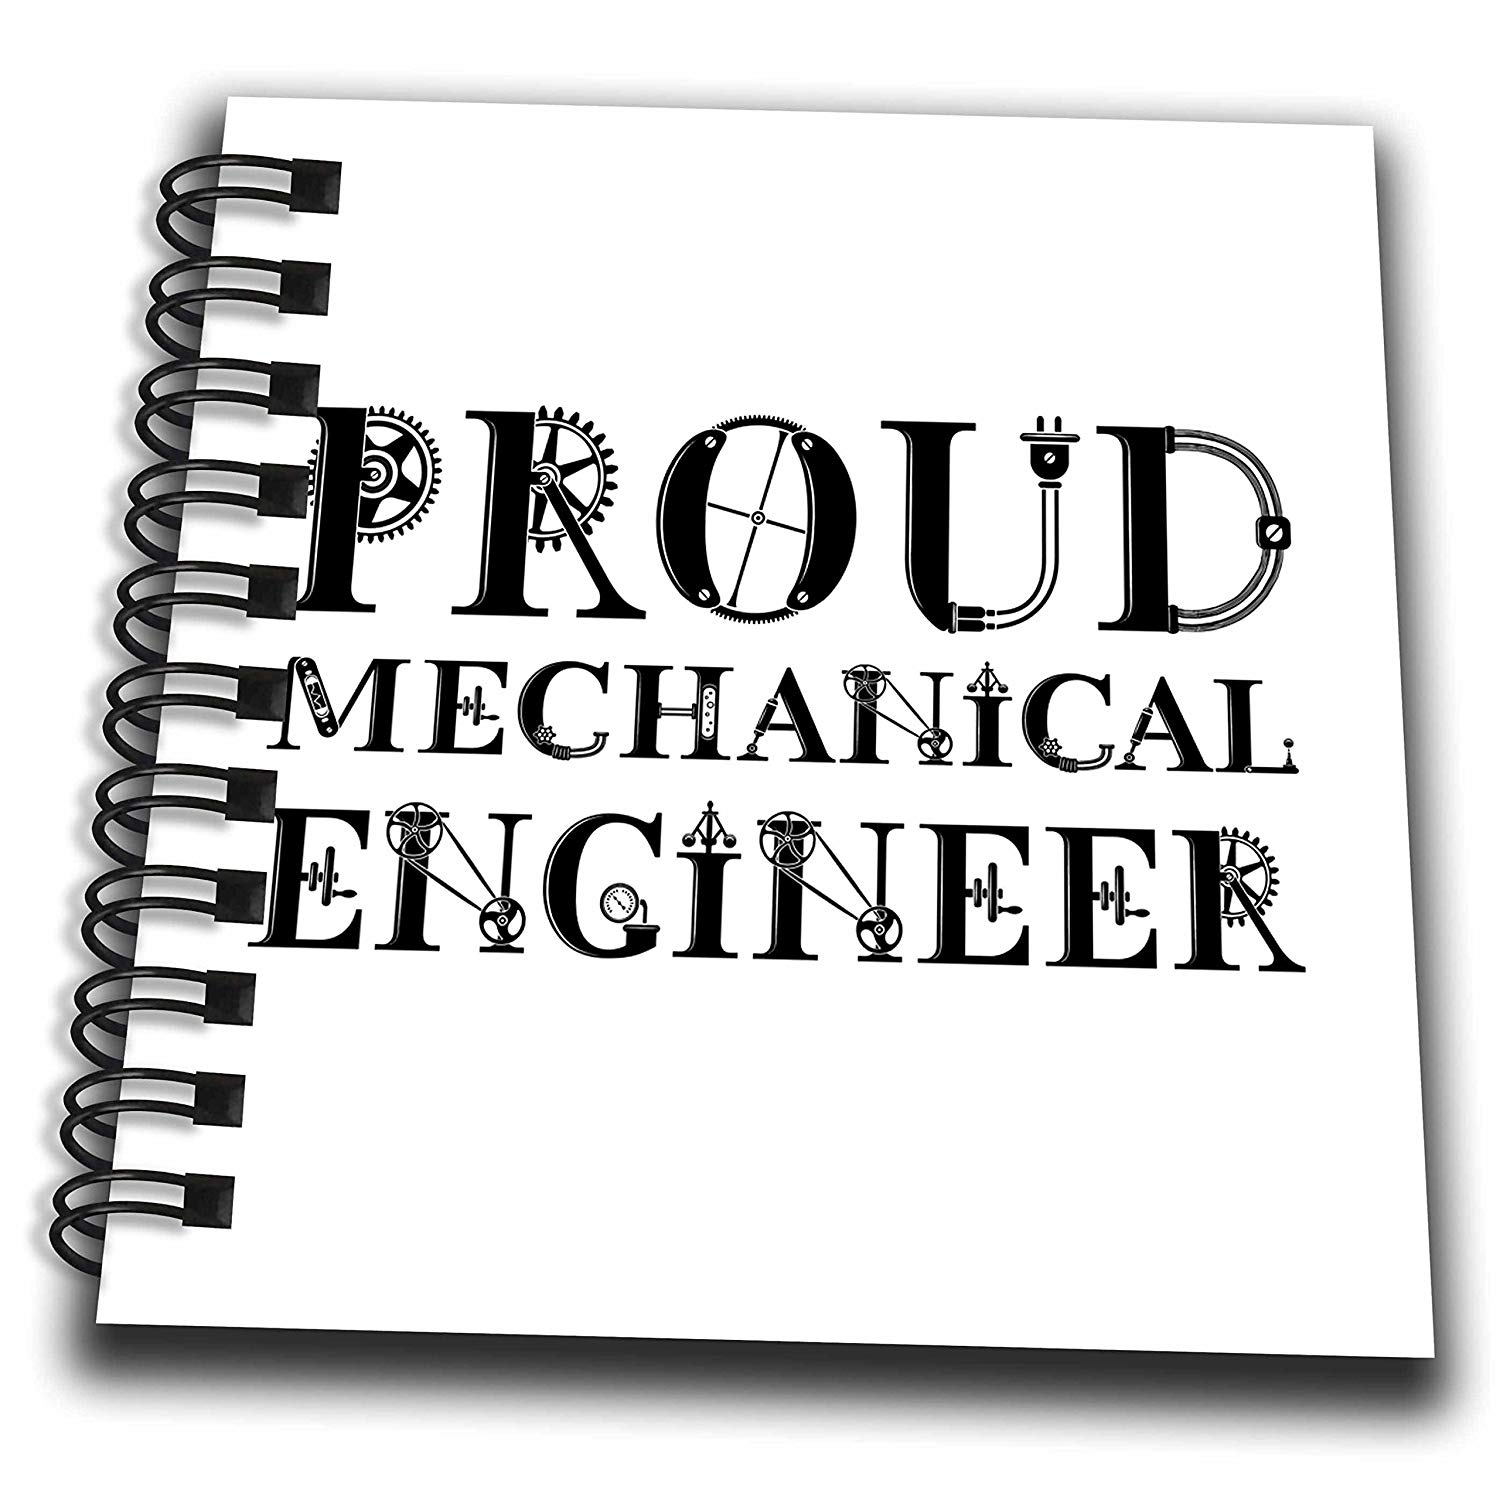 Cheap Mechanical Design Engineer Jobs In Pune Find Mechanical Design Engineer Jobs In Pune Deals On Line At Alibaba Com